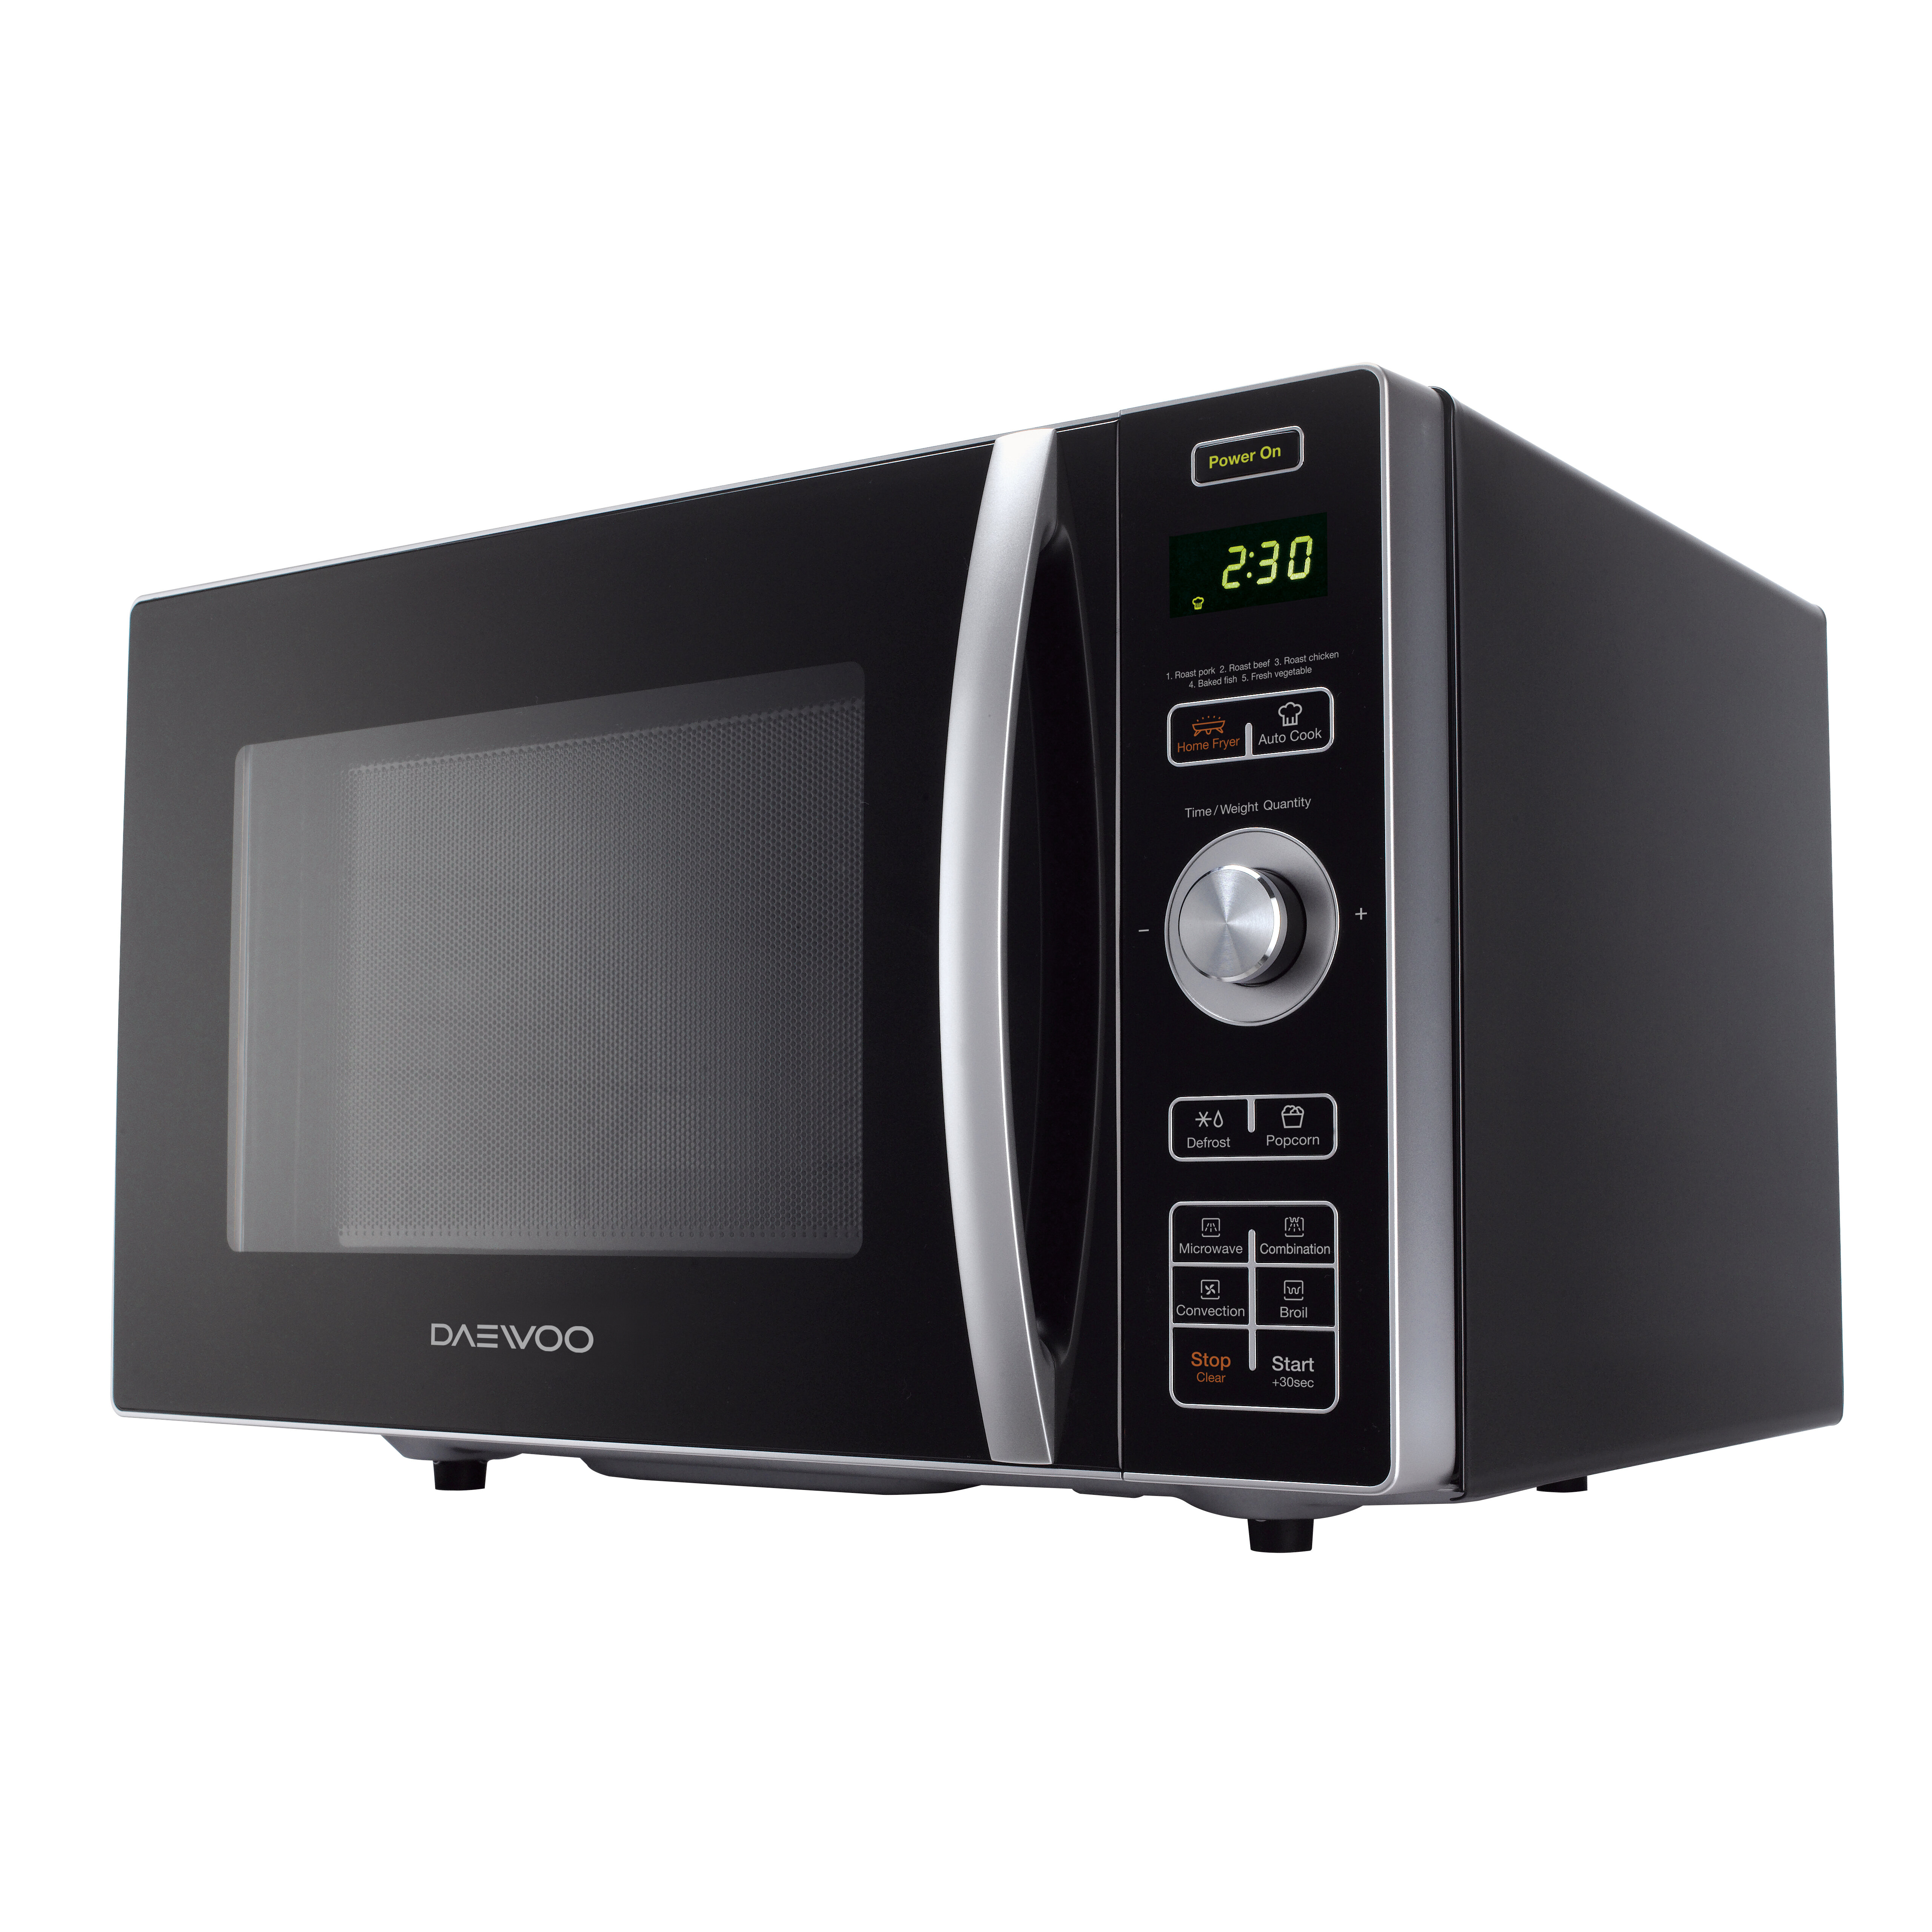 Countertop Convection Microwave With Air Fryer Capability Reviews Wayfair